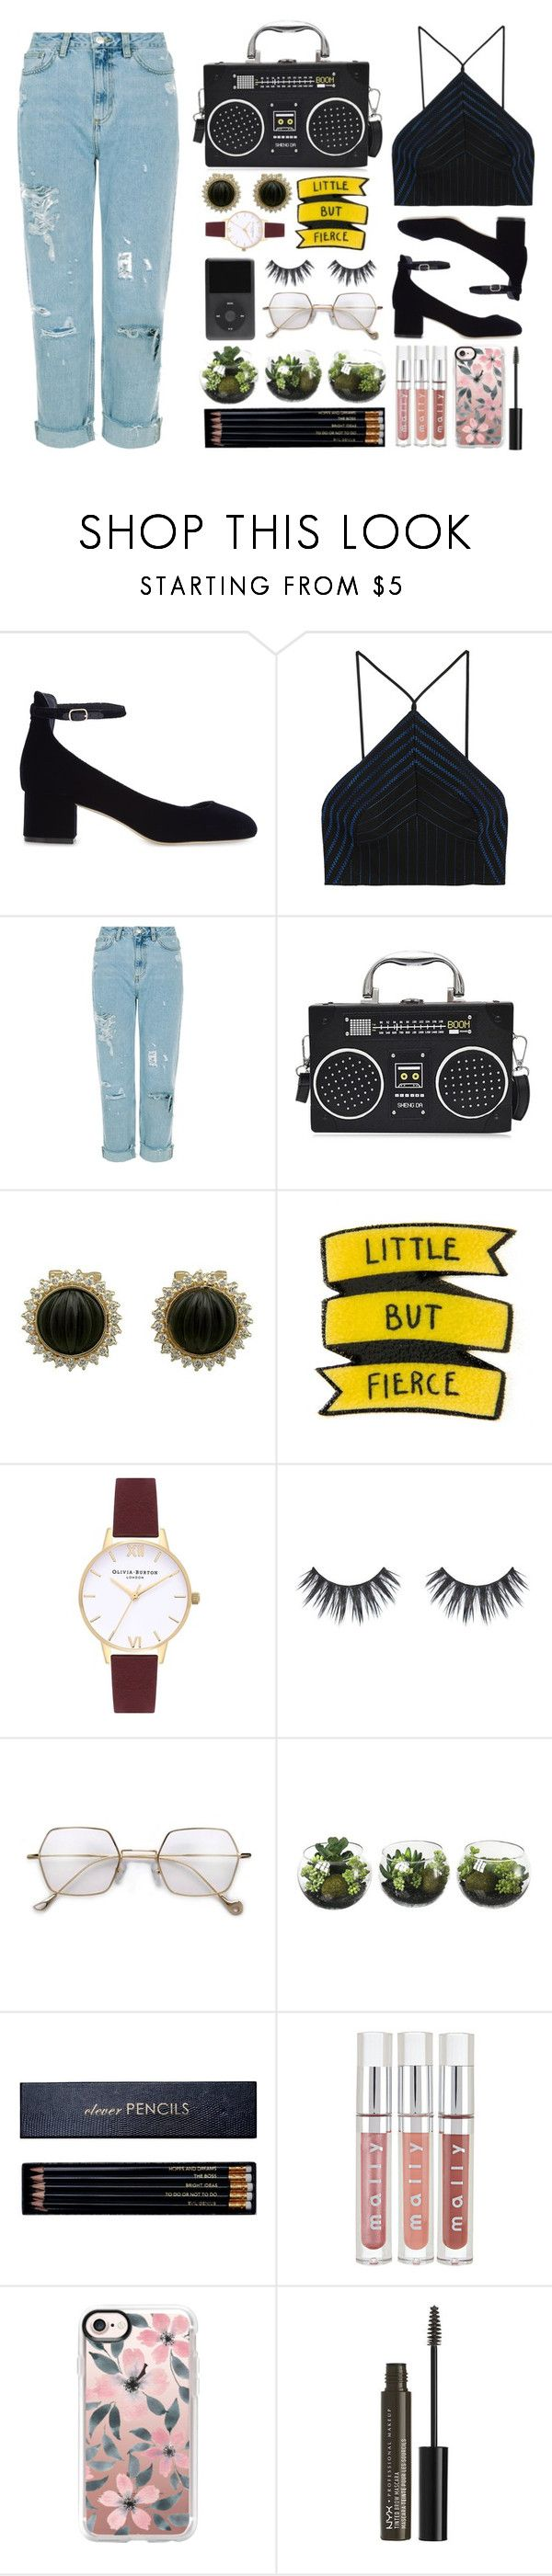 """""""Dark Side of the Moon"""" by pleasantlyvacant ❤ liked on Polyvore featuring Sandro, Alexander Wang, Olivia Burton, Sloane Stationery, Casetify and NYX"""